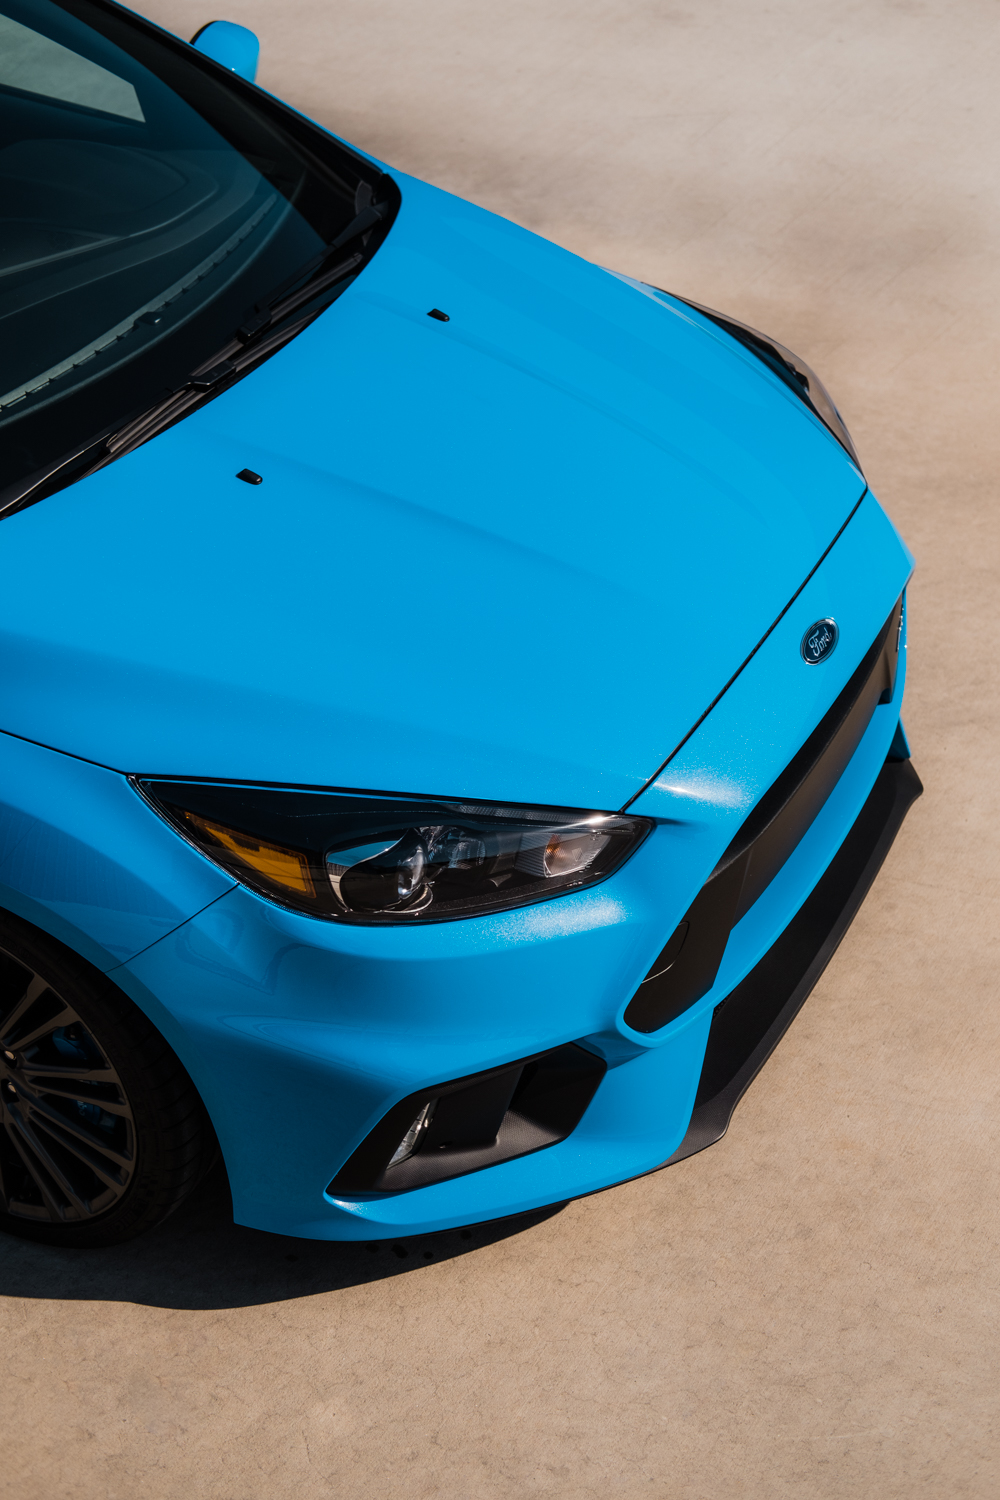 Ford Focus RS-XPEL Ultimate Paint Protection Film-Car Wash-Car Detailing-Paint Protection Film-Clear Bra-Ford Performance-121.jpg